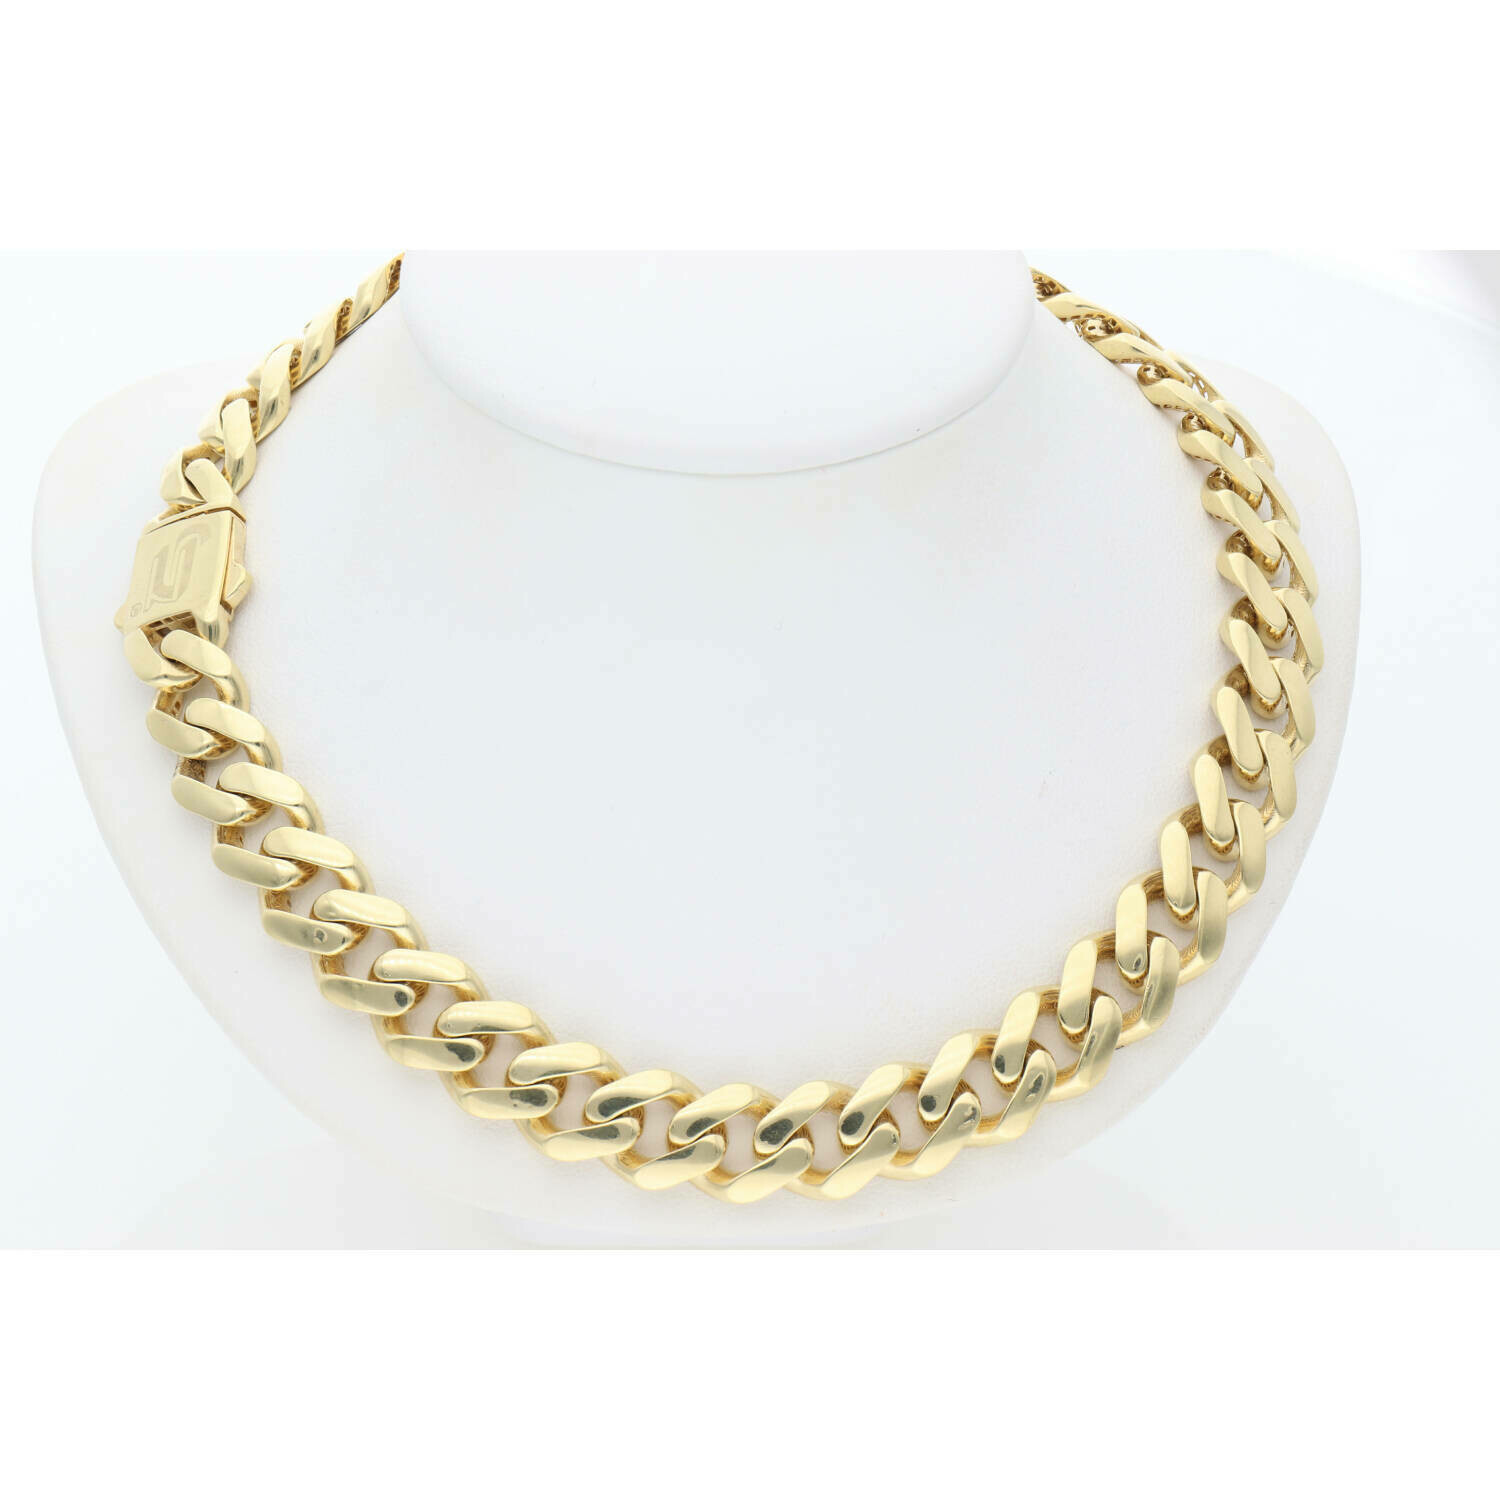 10 Karat Gold Cuban Link Monaco Chain 10.7 mm and 26 inches